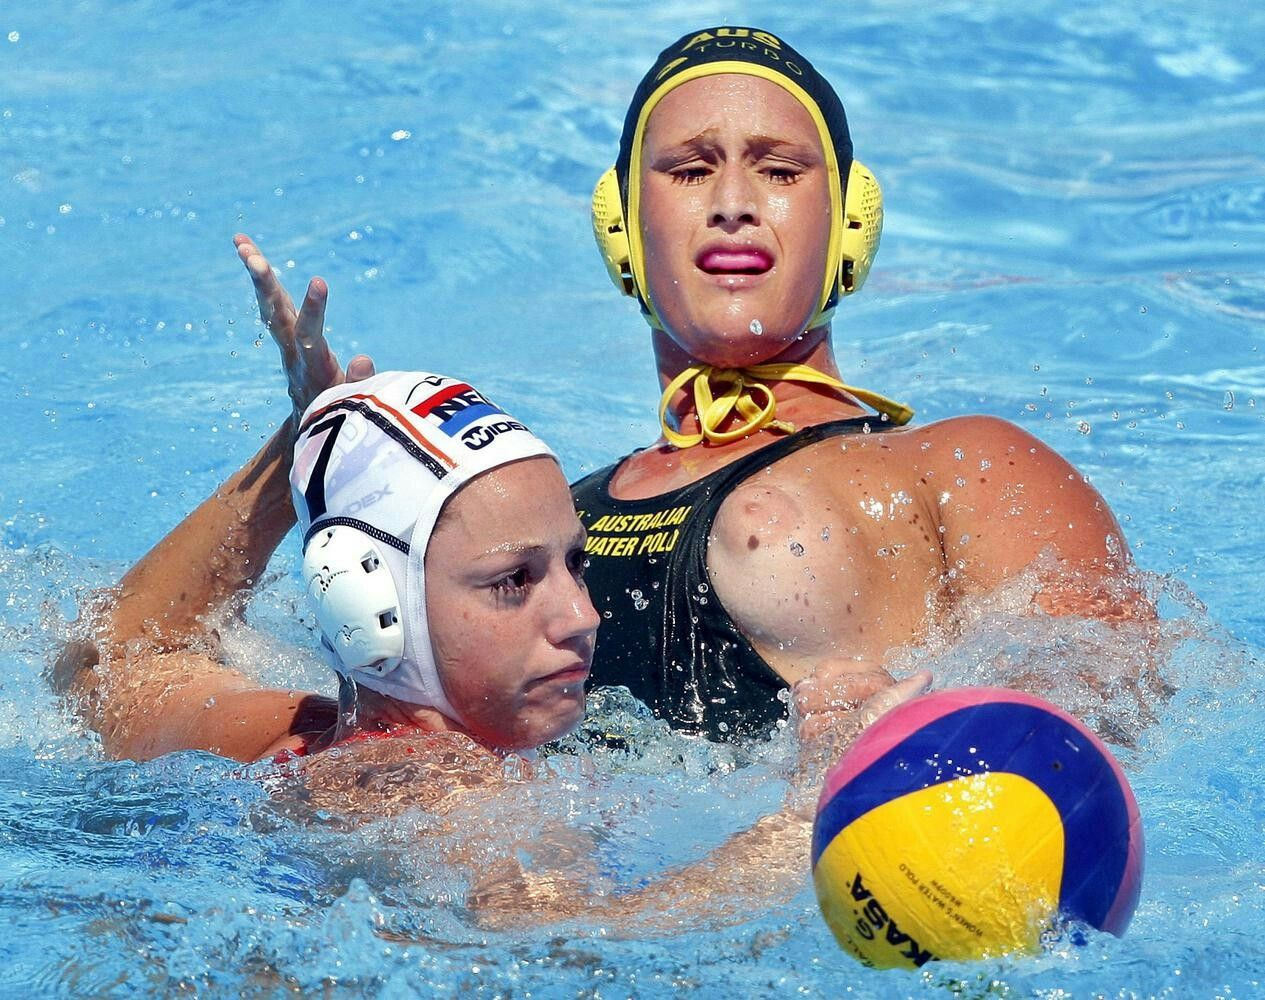 What you accidental nudity sport olympic water polo recommend you